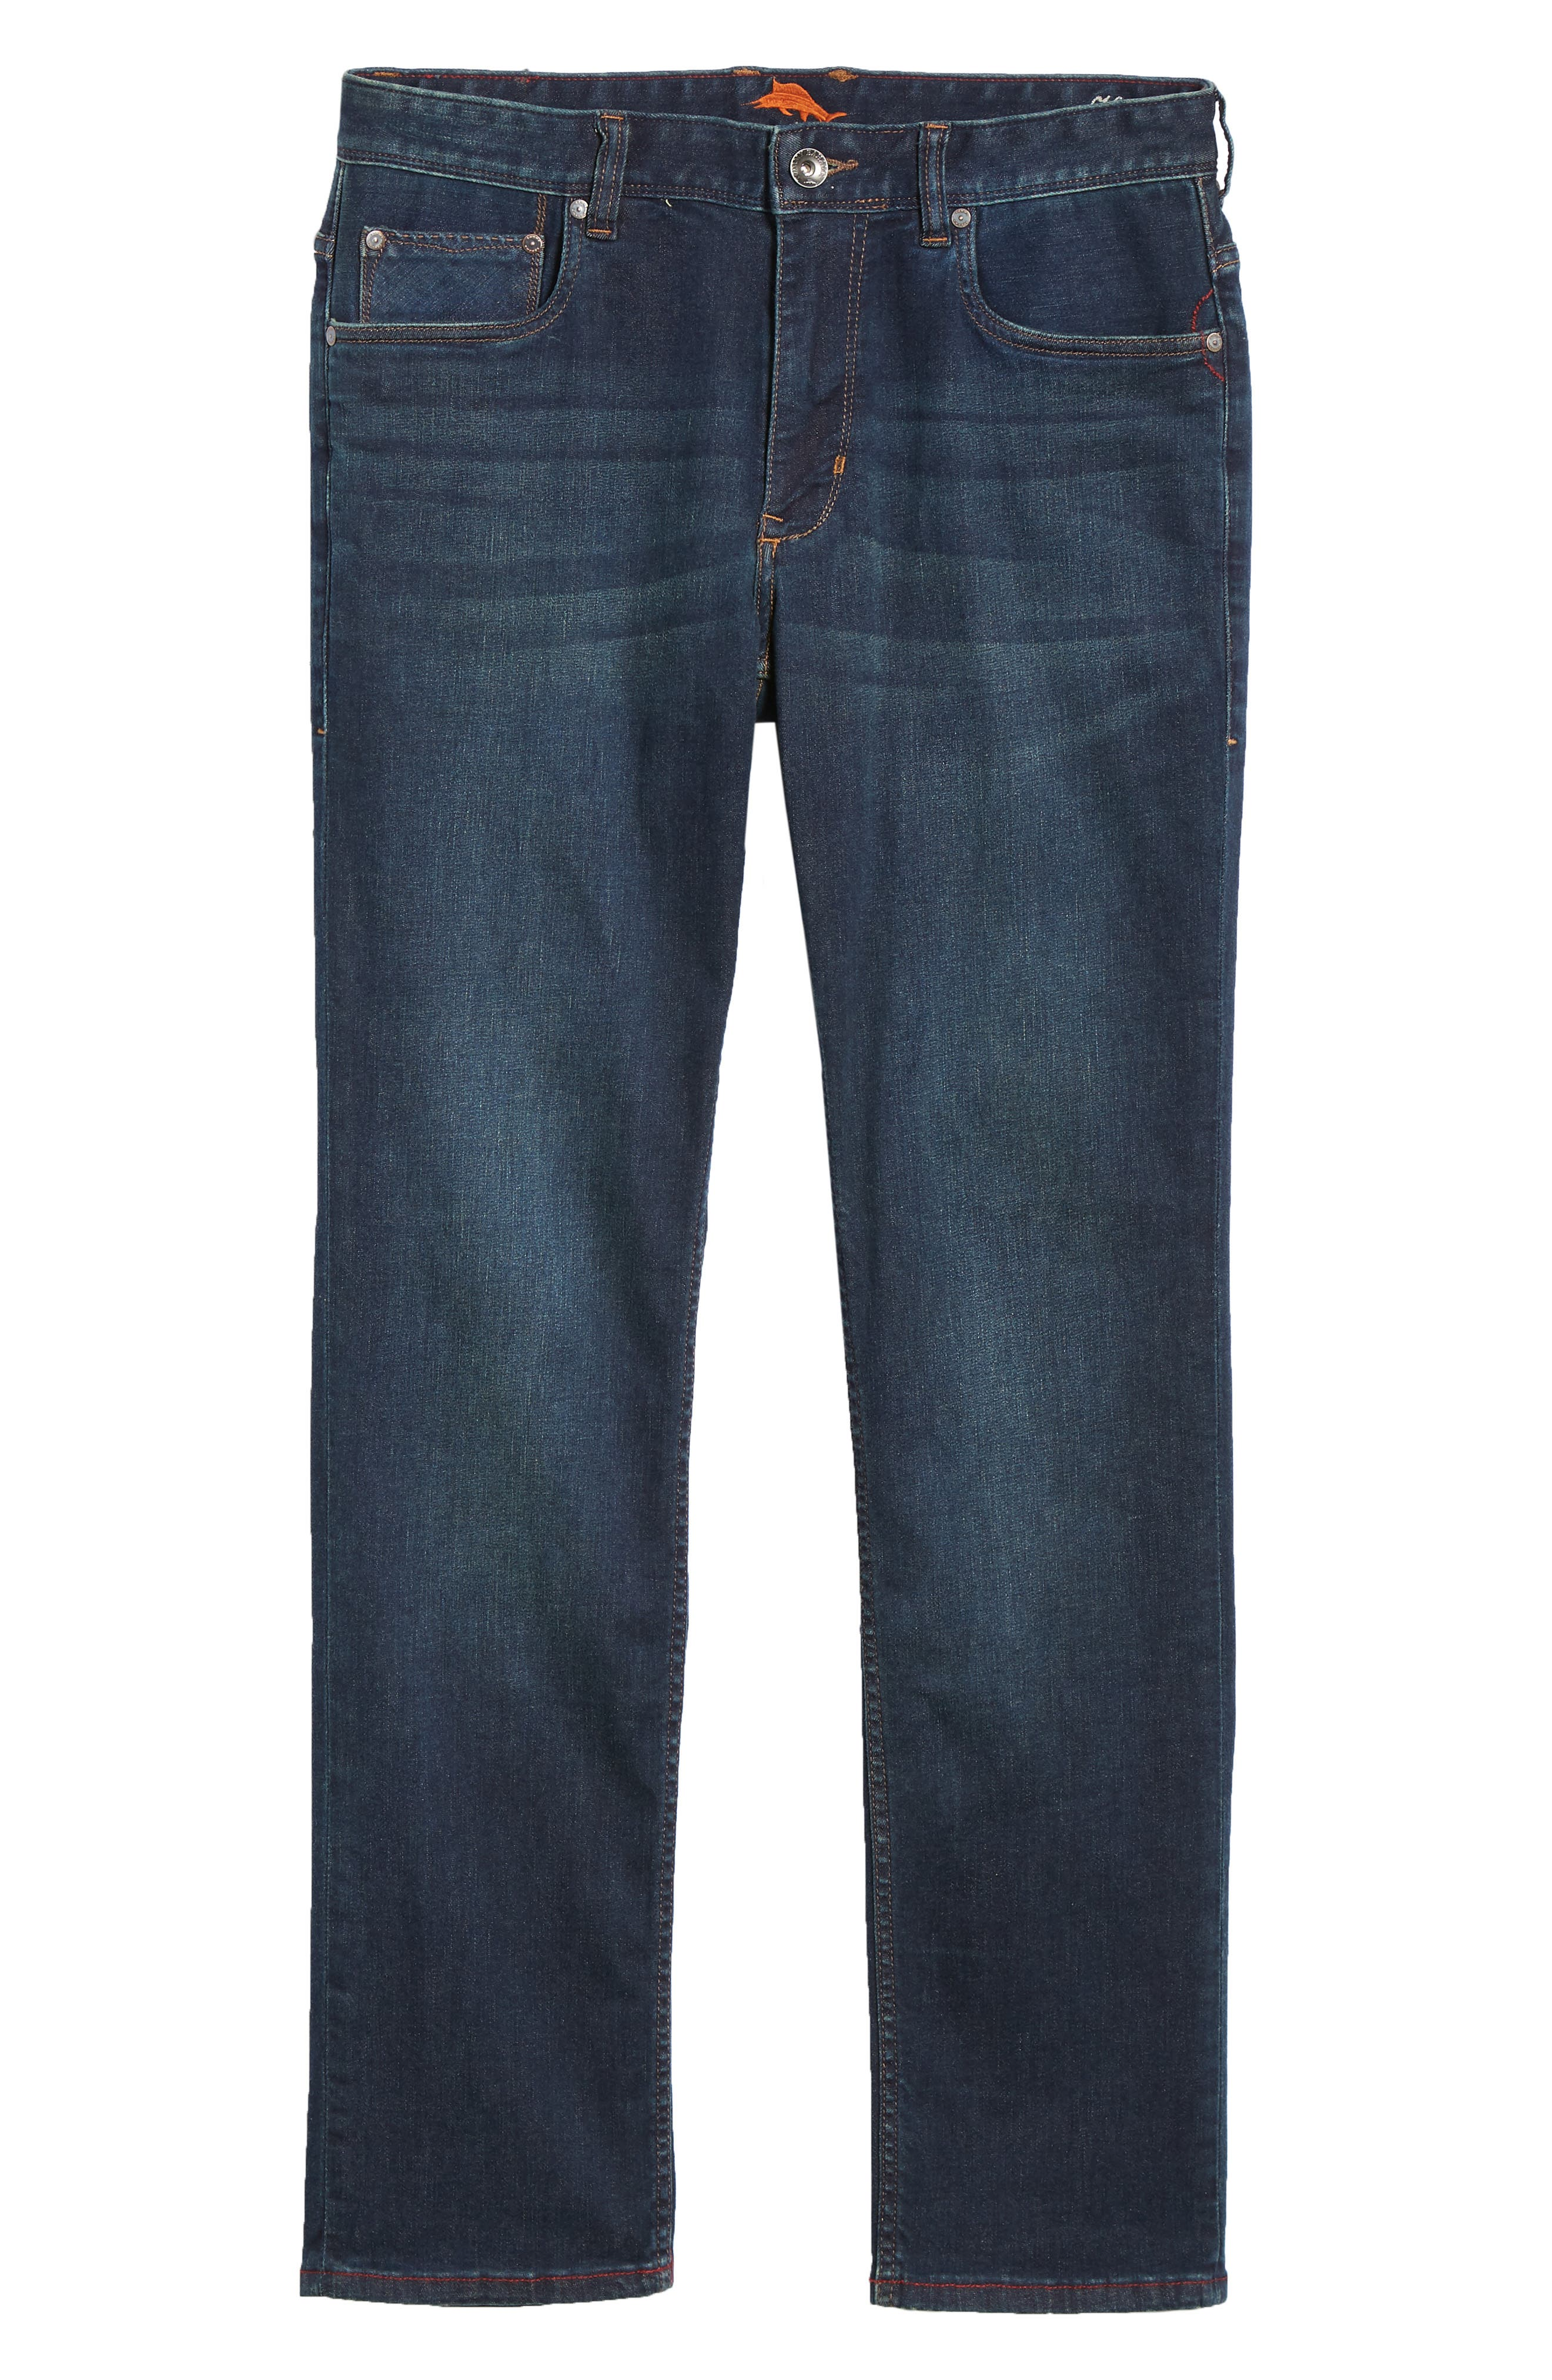 Costa Rica Vintage Regular Fit Jeans,                             Alternate thumbnail 6, color,                             RINSE WASH